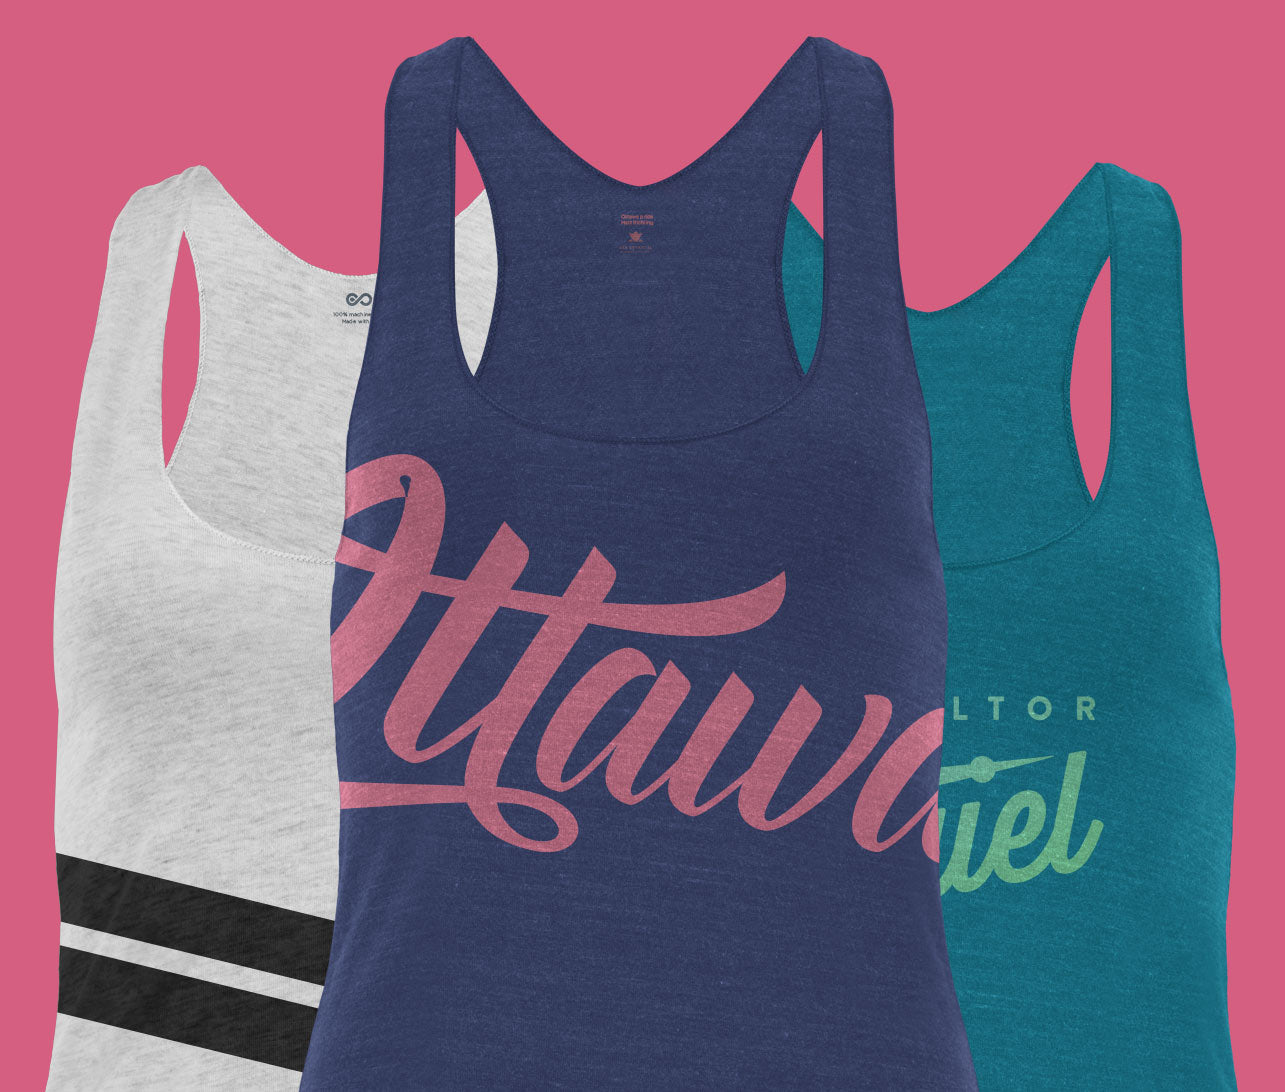 differnt color tank tops